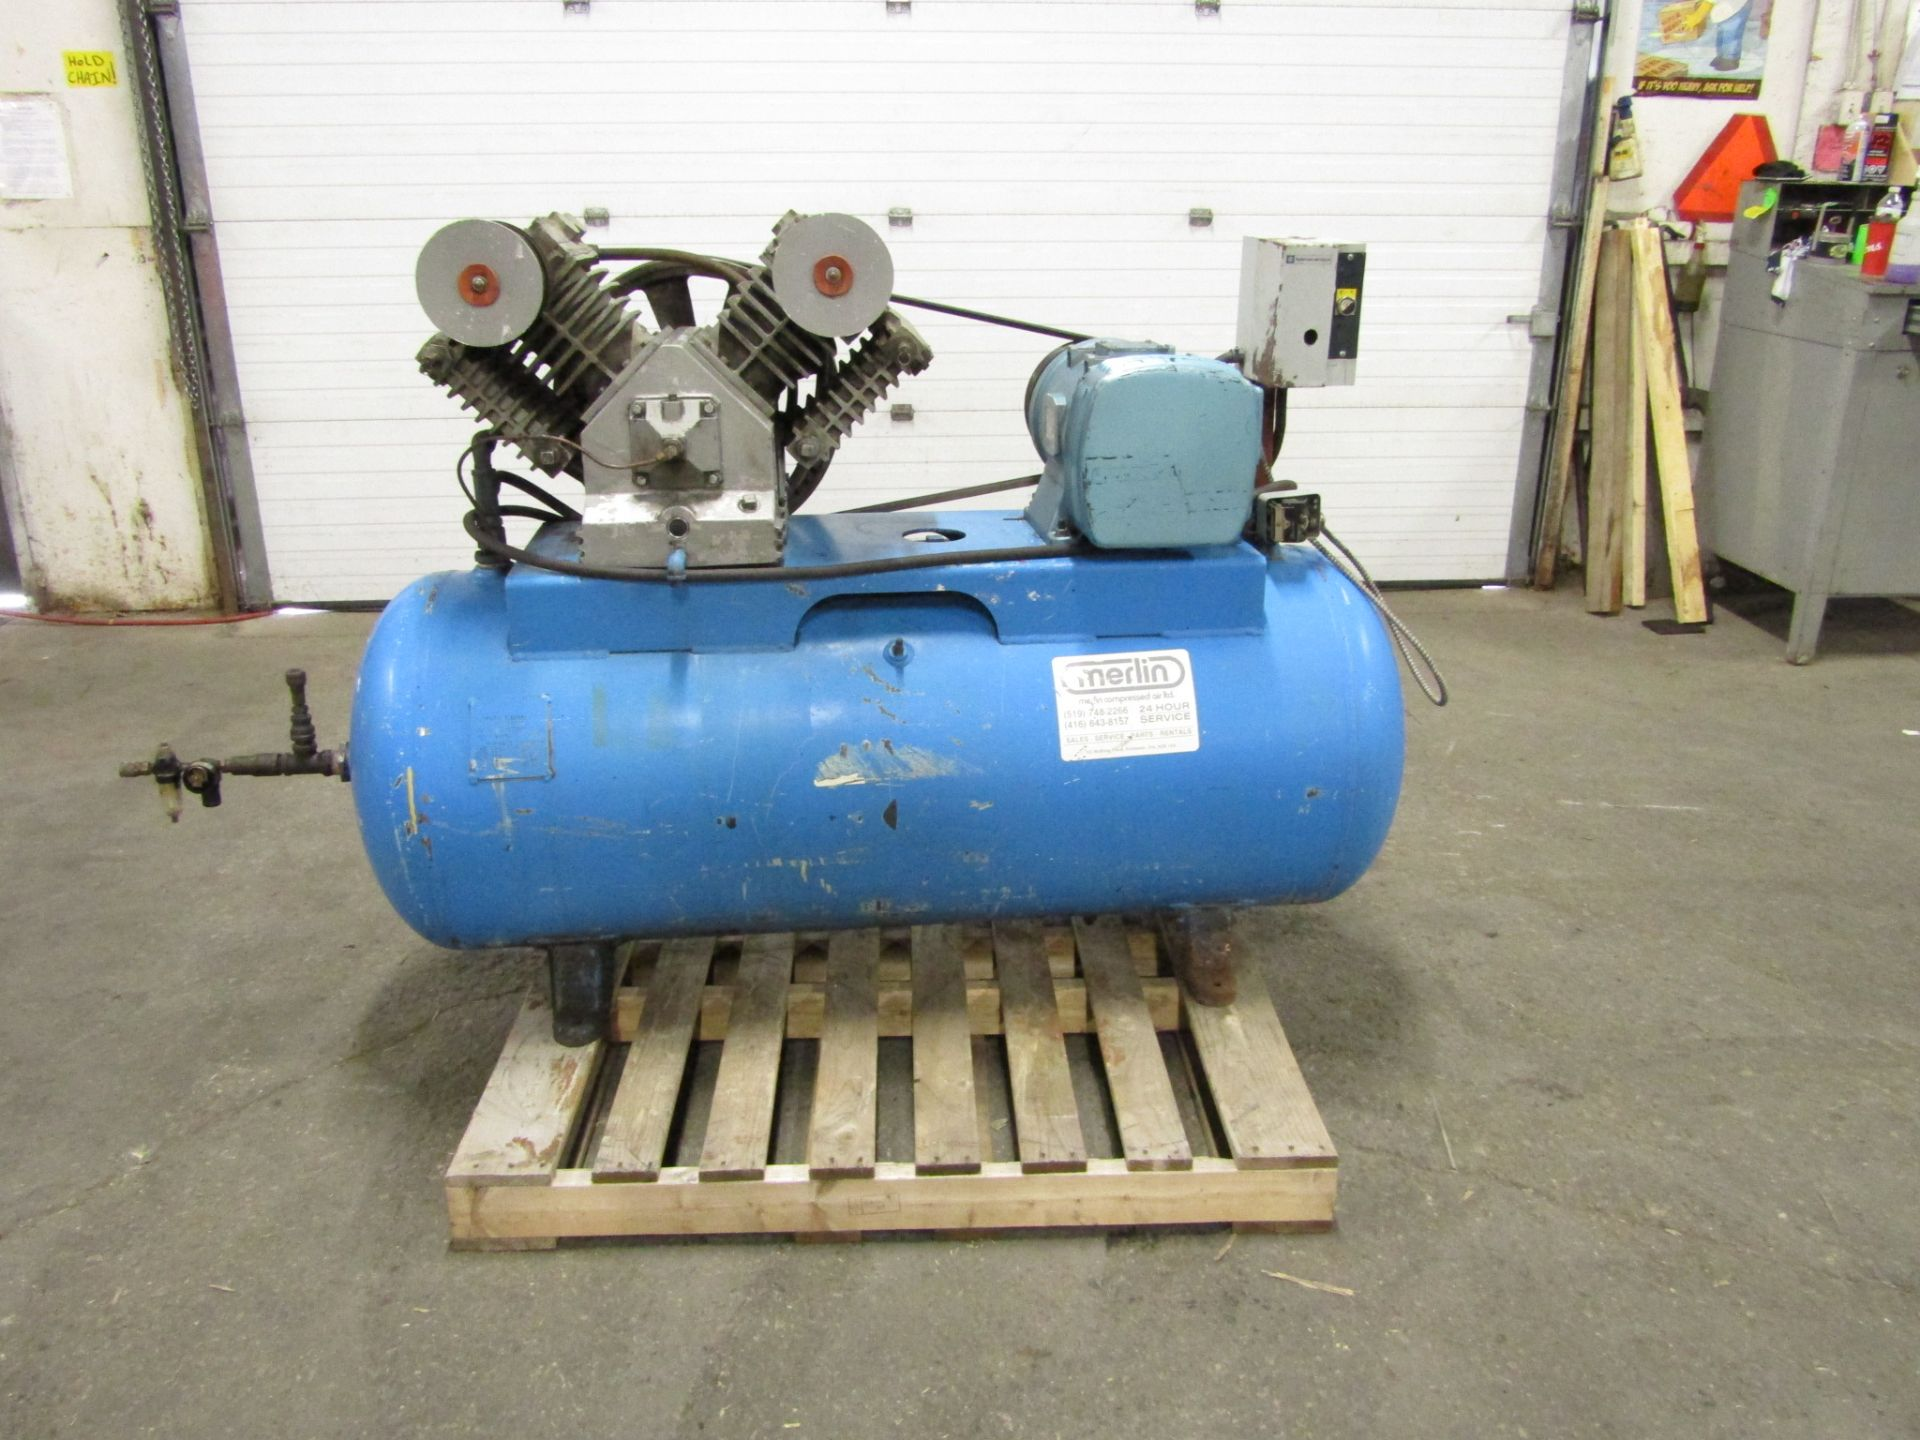 Lot 245 - Merlin Air Compressor 15HP with 200 gallon tank